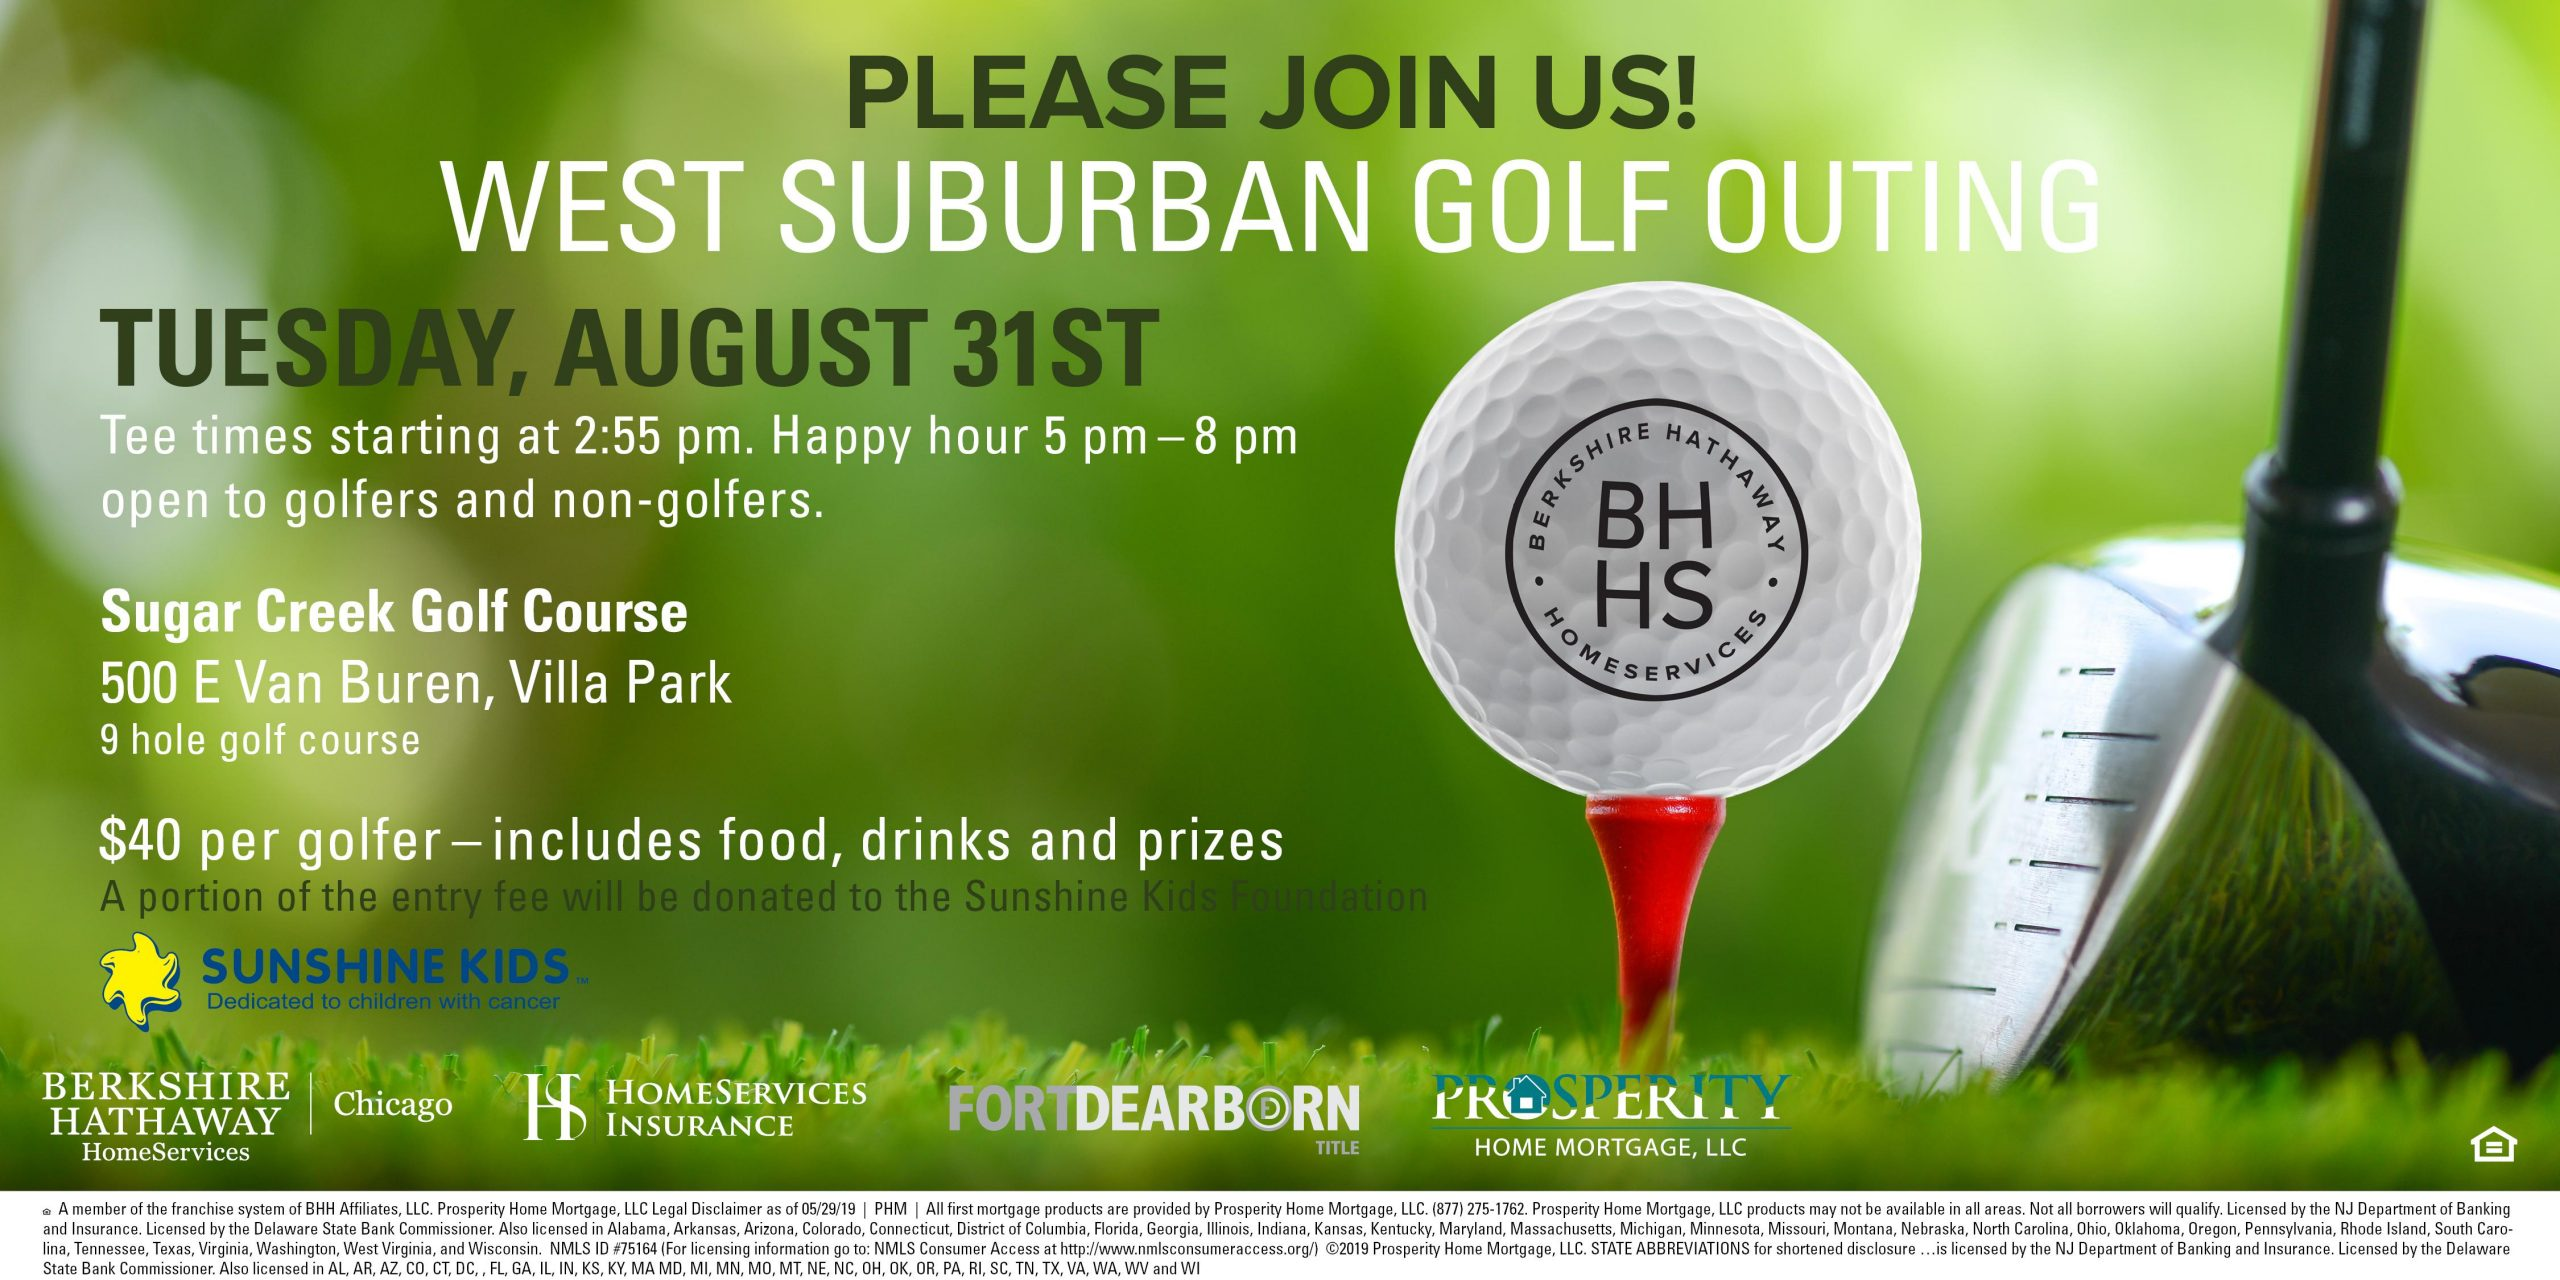 2021 West Suburban Golf Outing